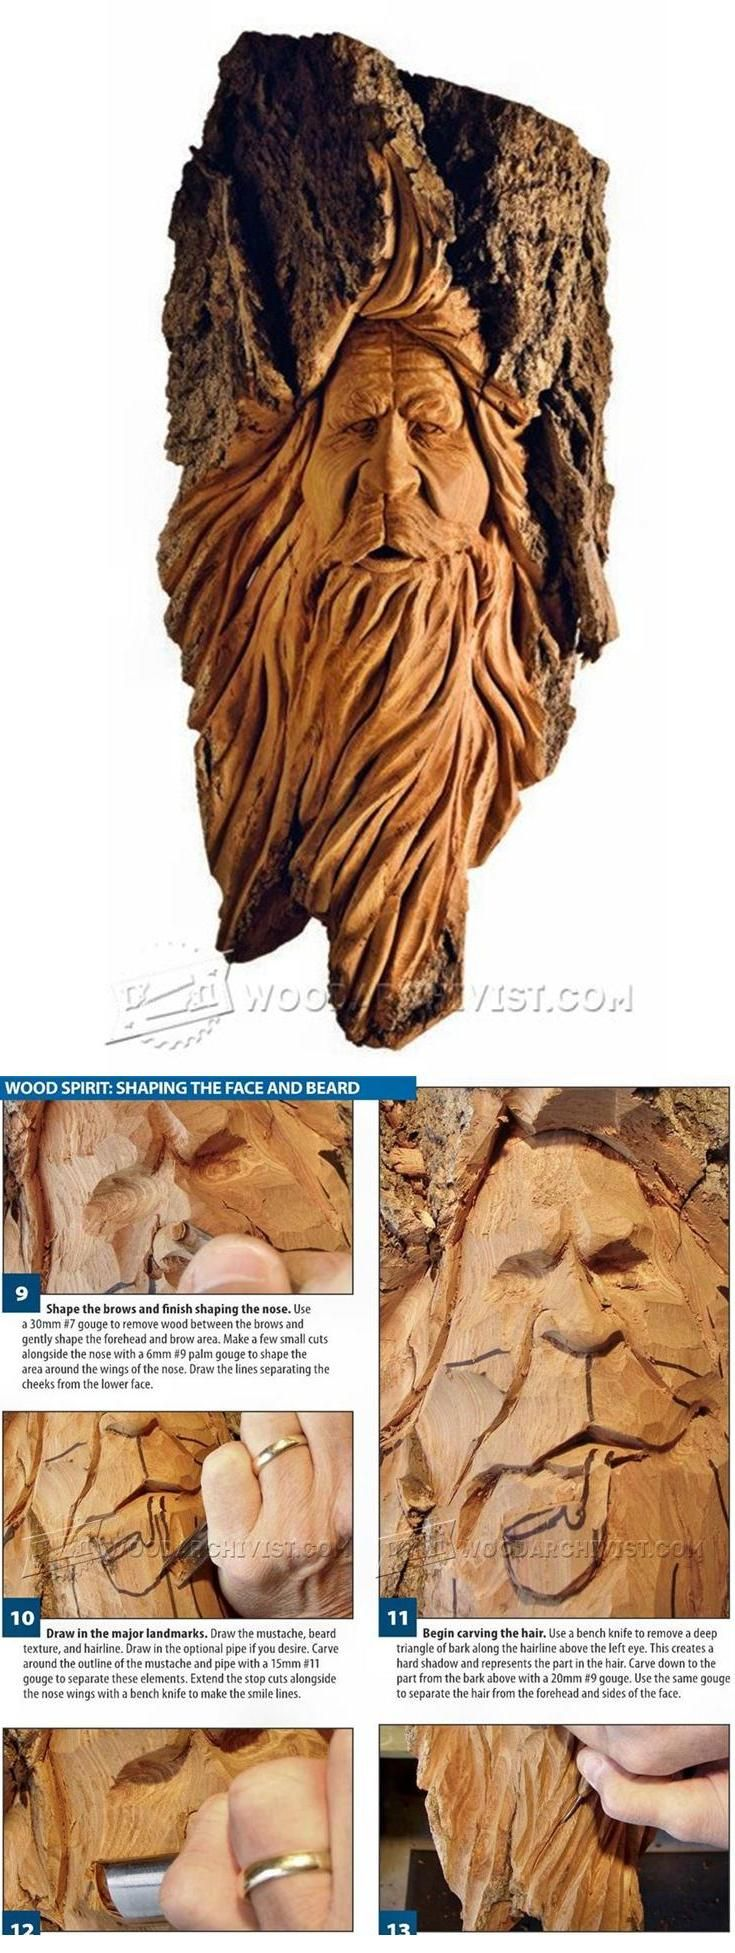 Best wood carving sculpture images on pinterest